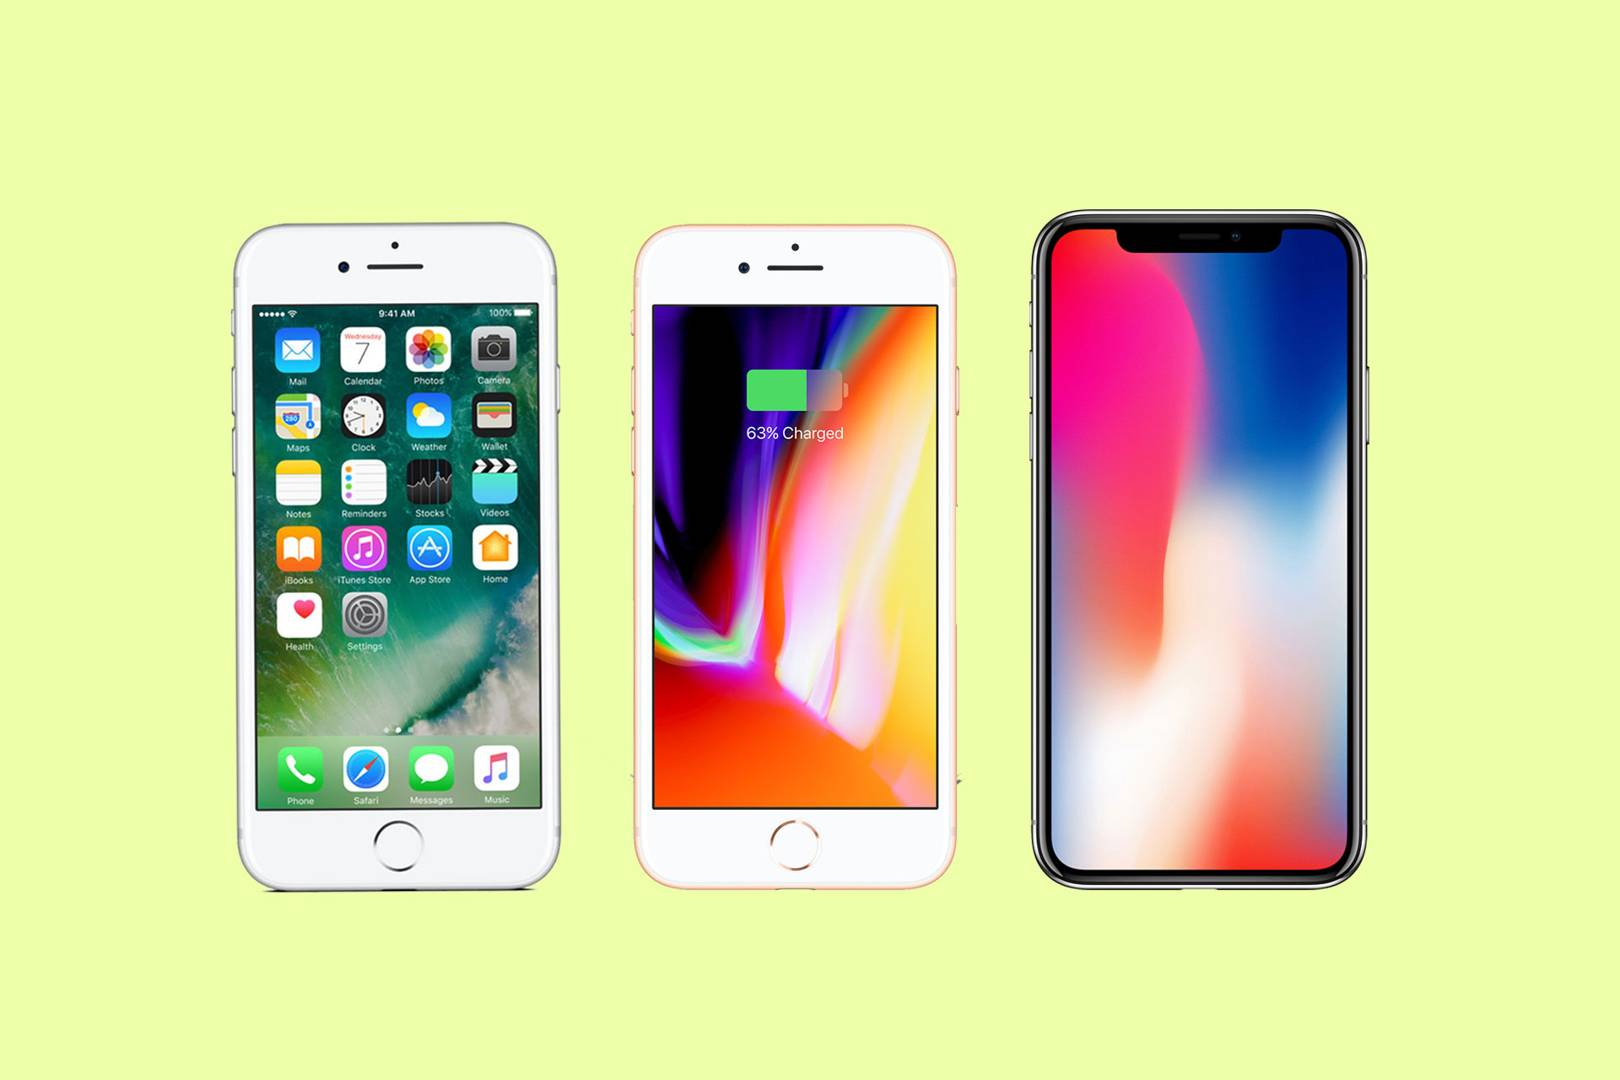 Iphone X Vs Iphone 8 Vs Iphone 7 Should You Upgrade Wired Uk